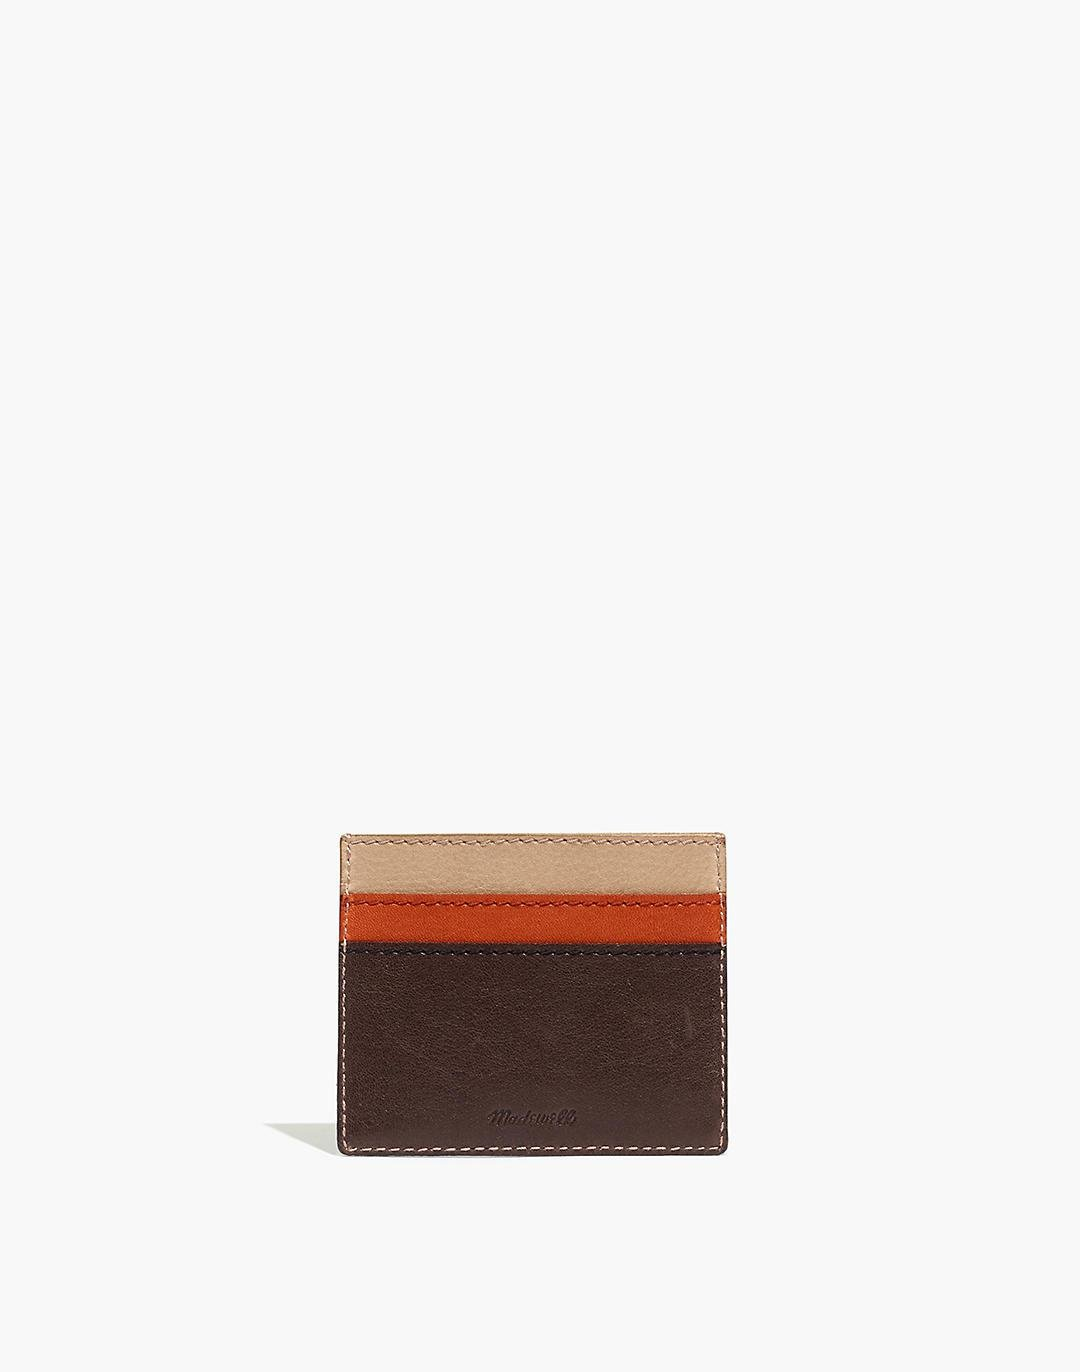 The Leather Card Case: Colorblock Edition